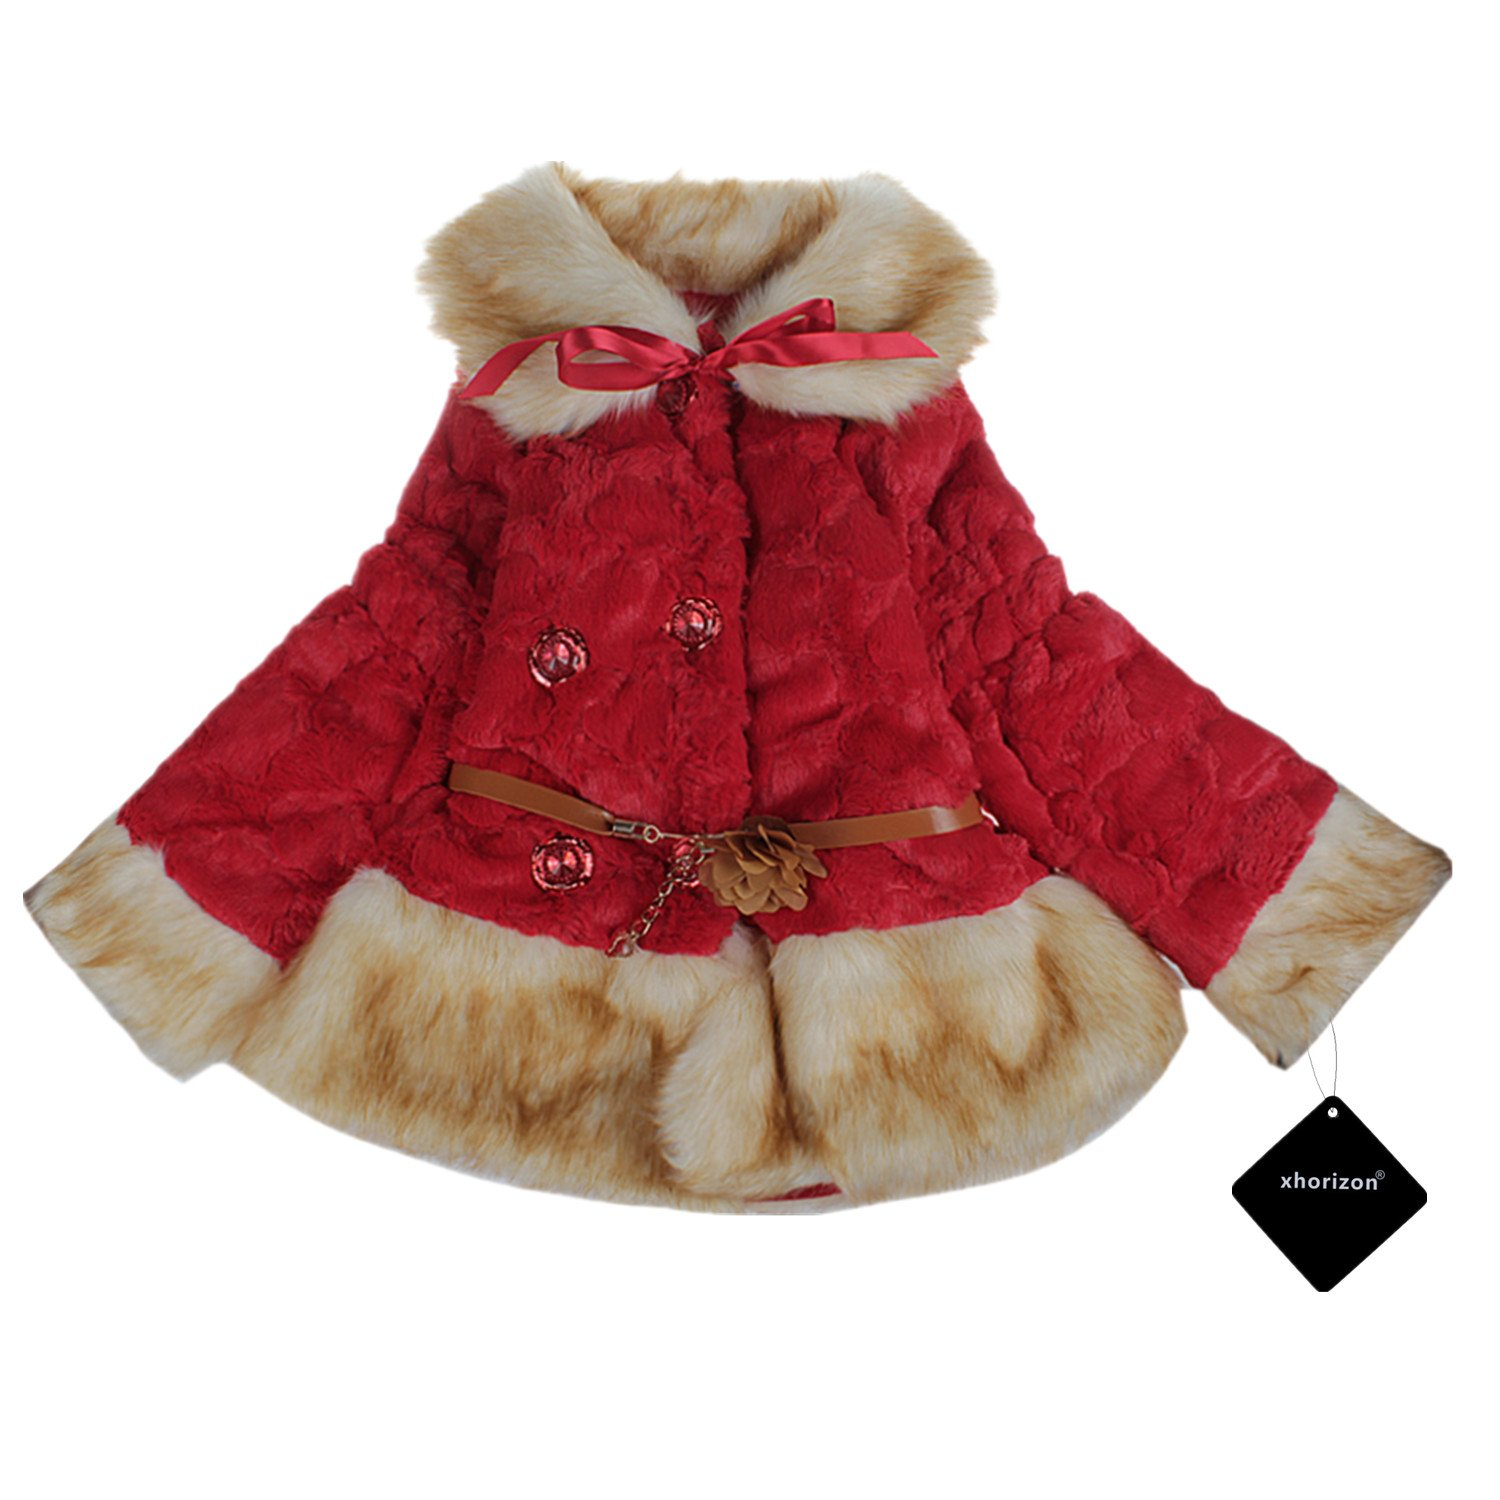 xhorizon TM SR1 Baby Girl Kids Toddler Fleeced Warm Winter Faux Fur Lace Jacket Coat Age 1-5 Years Gift